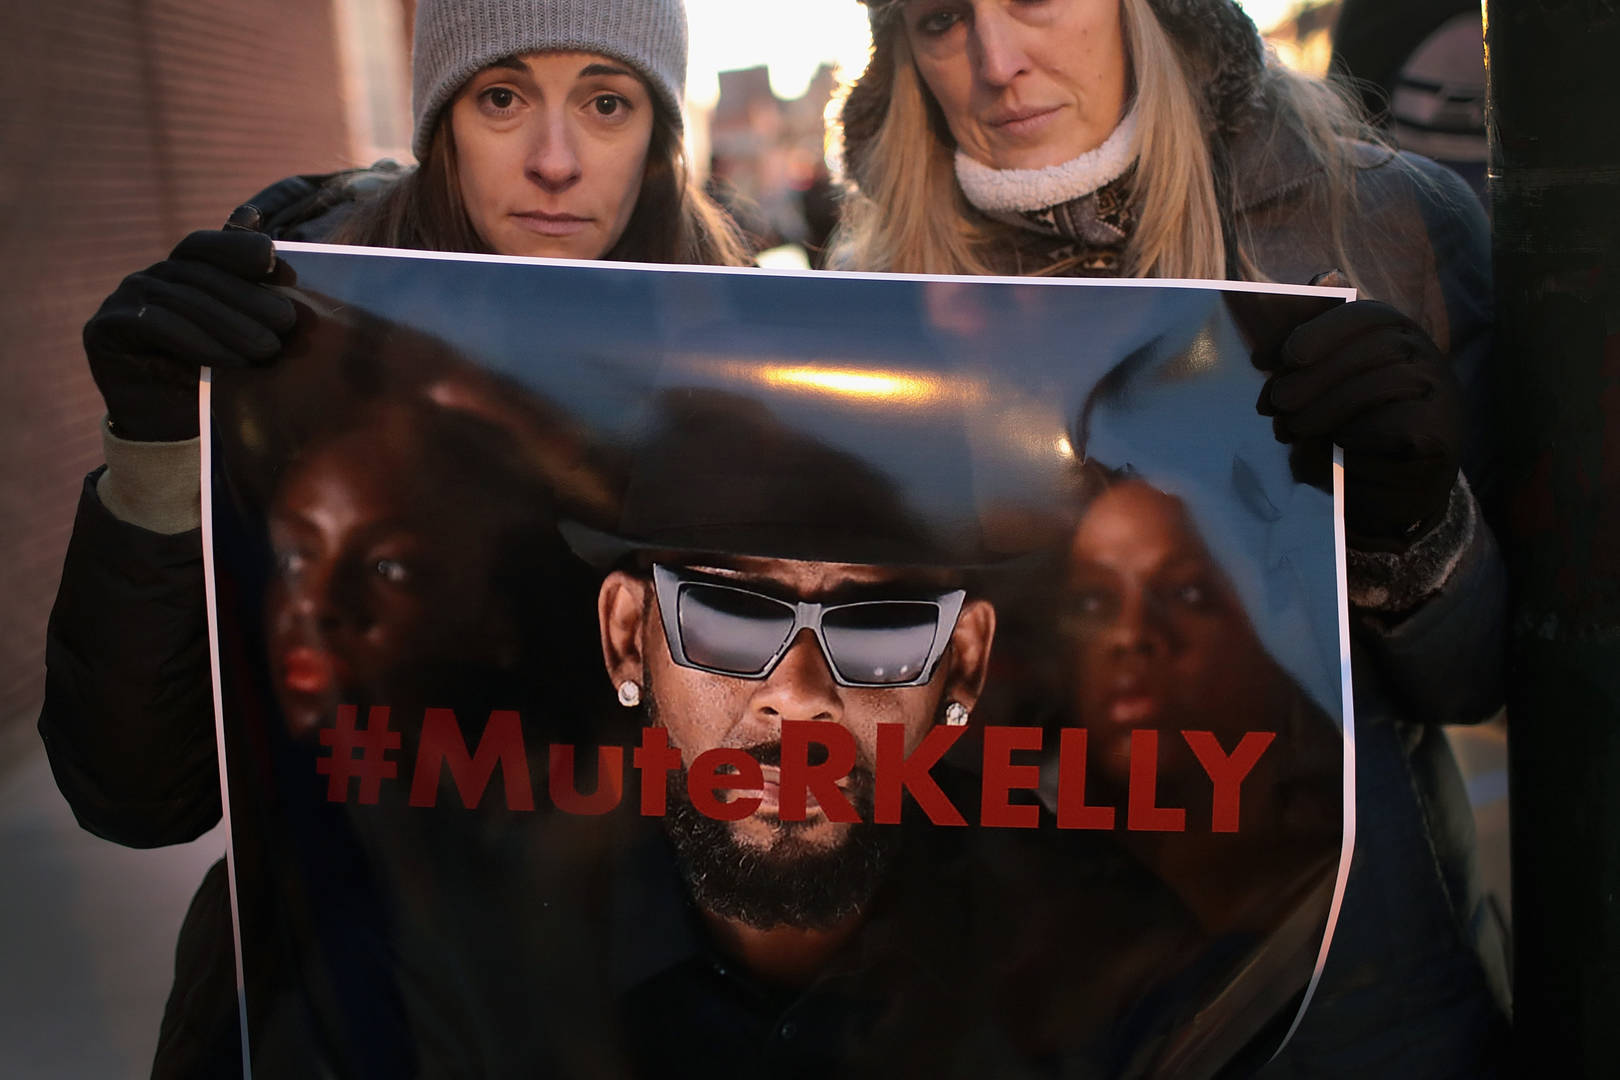 Sony drops R. Kelly after furor over allegations